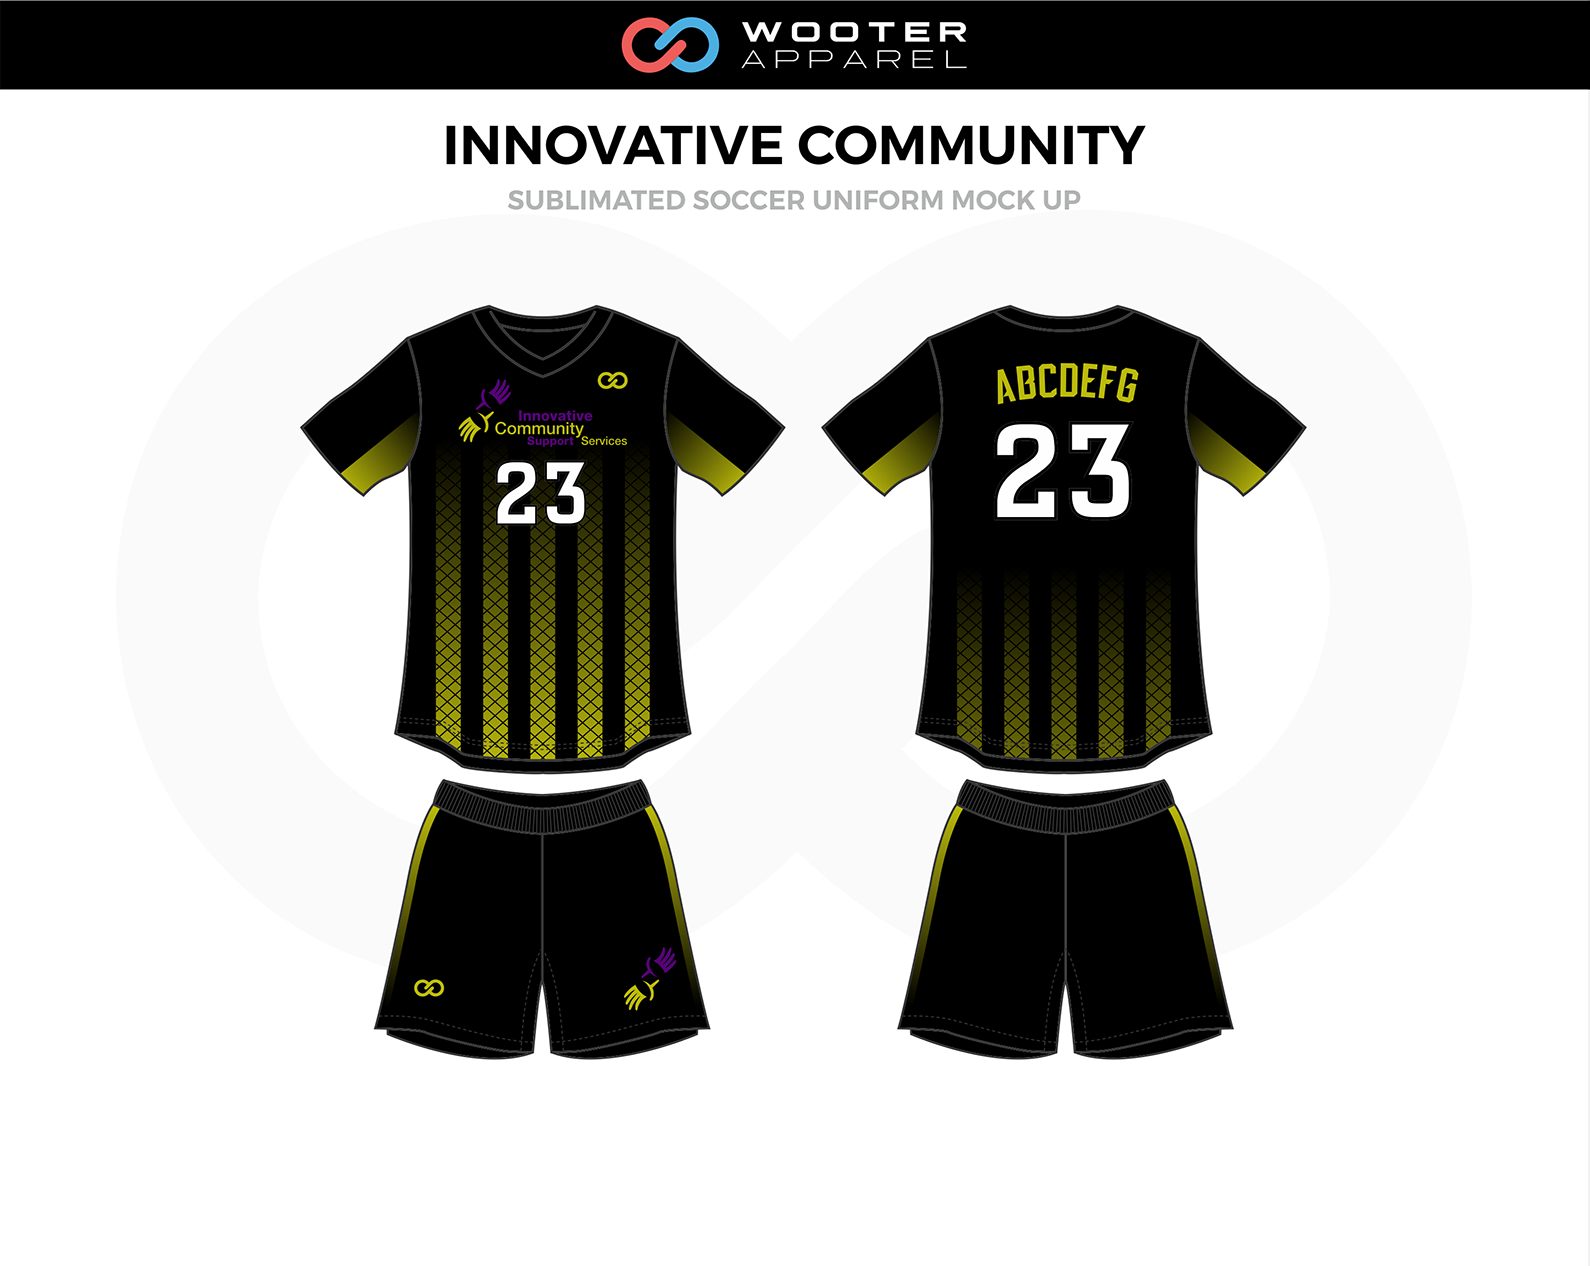 01_Innovative Community Support Services Soccer.png